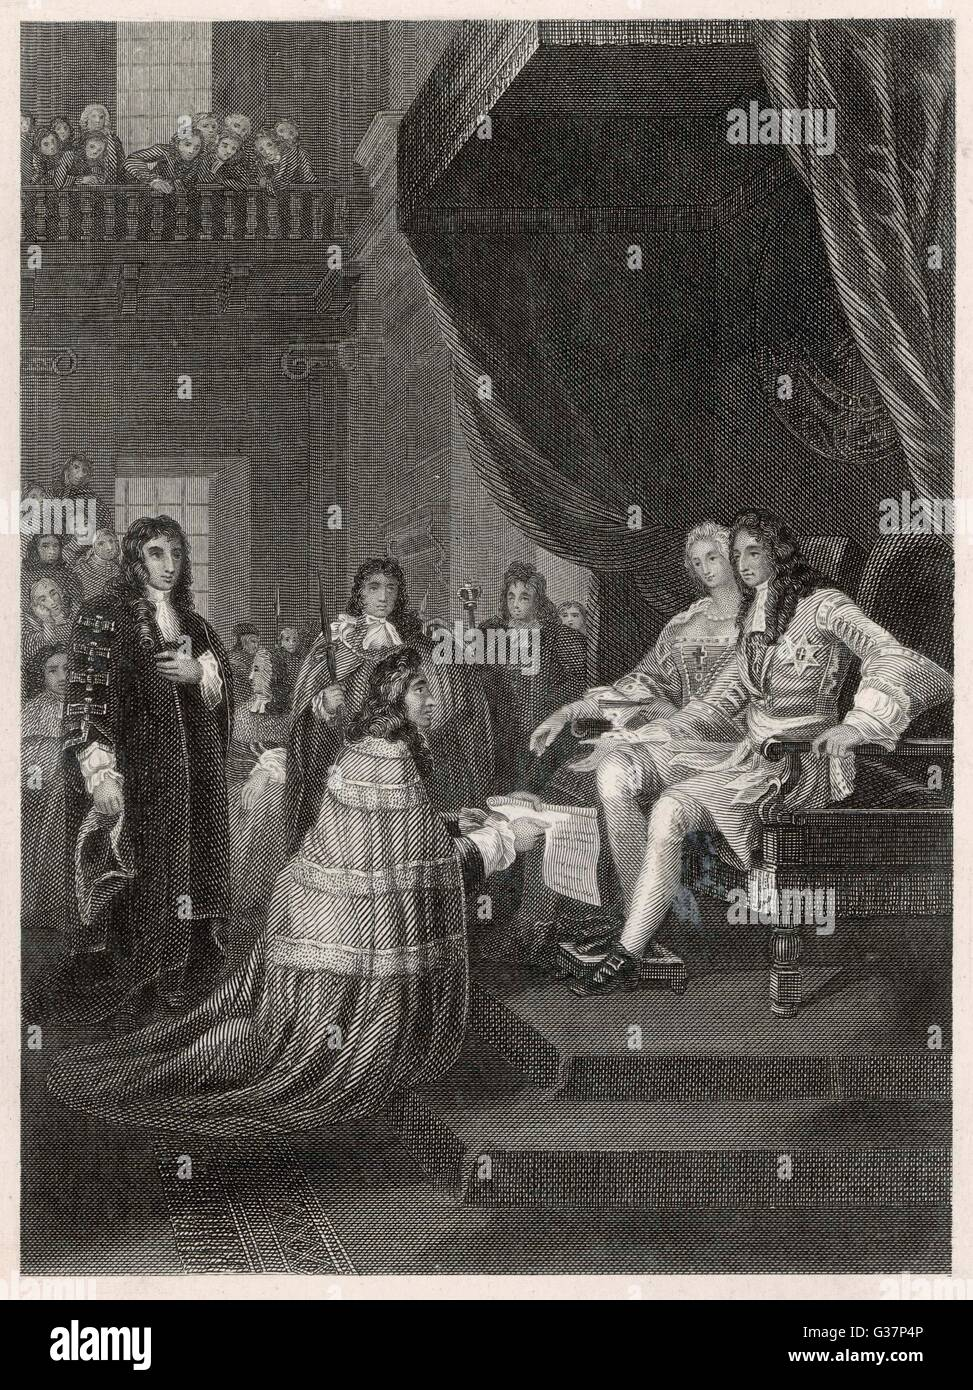 william and mary dating